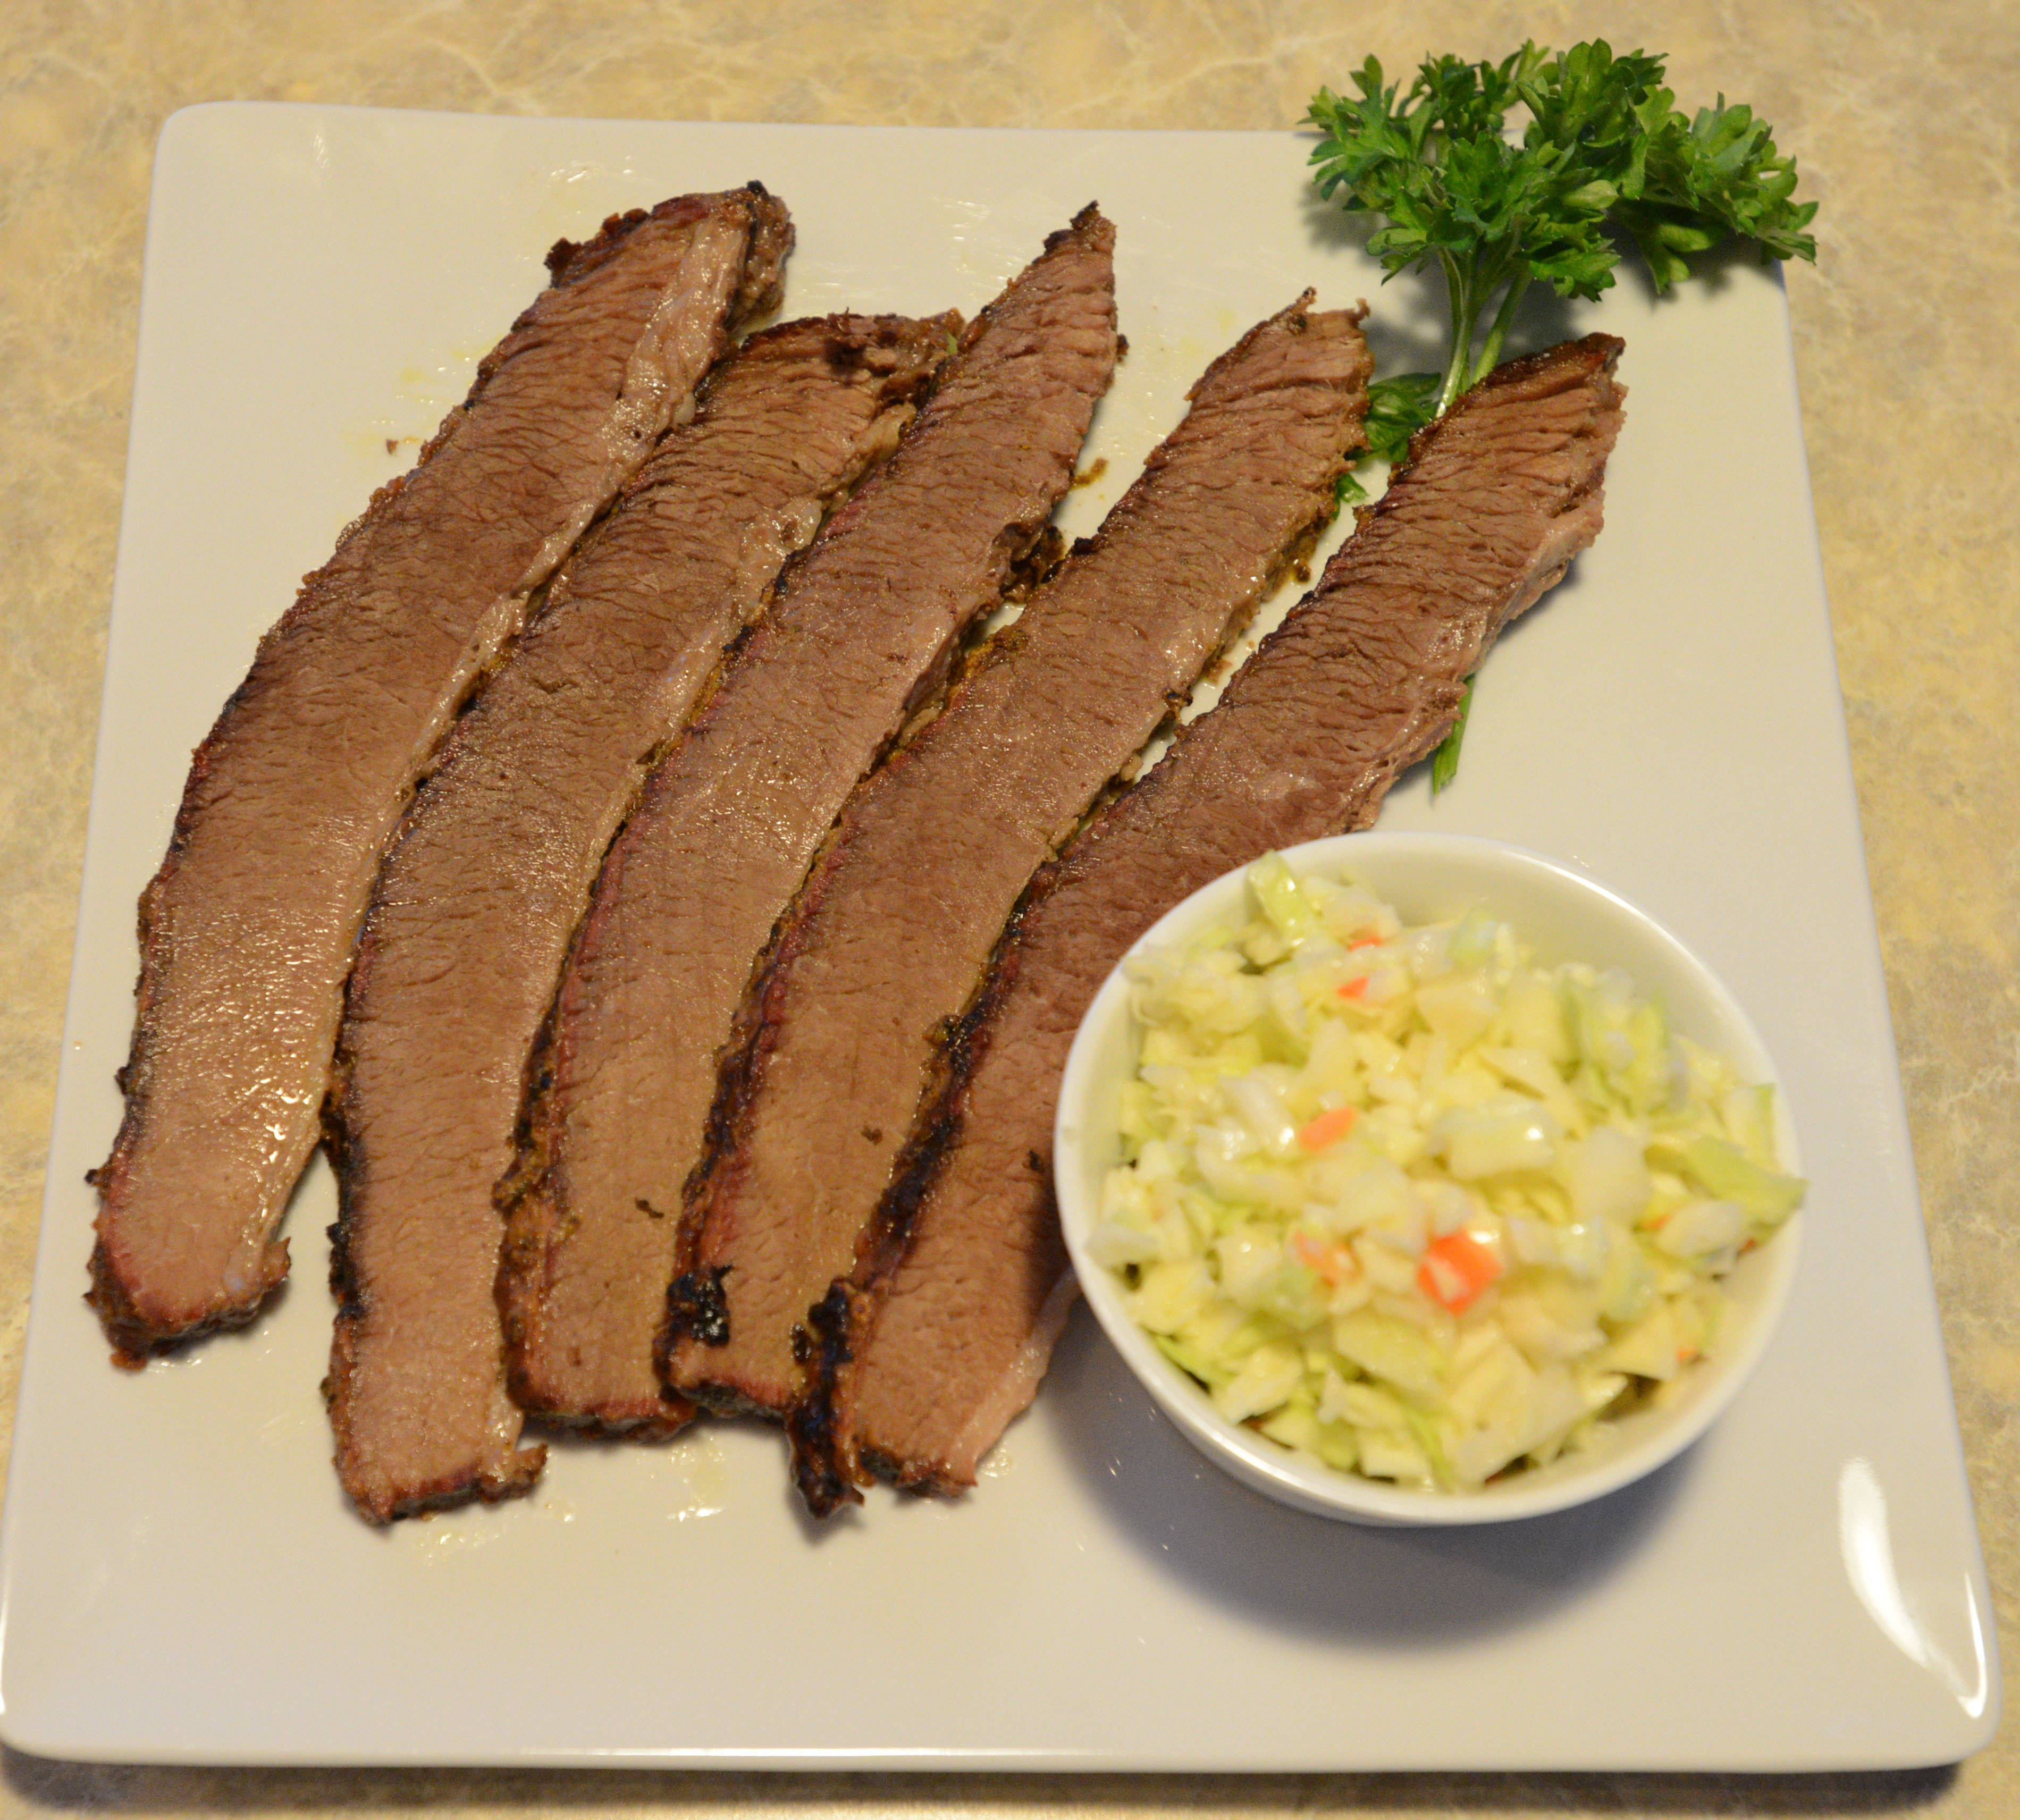 Brisket comes with a choice of sides at Park West Restaurant & Smokehouse in Villa Park.